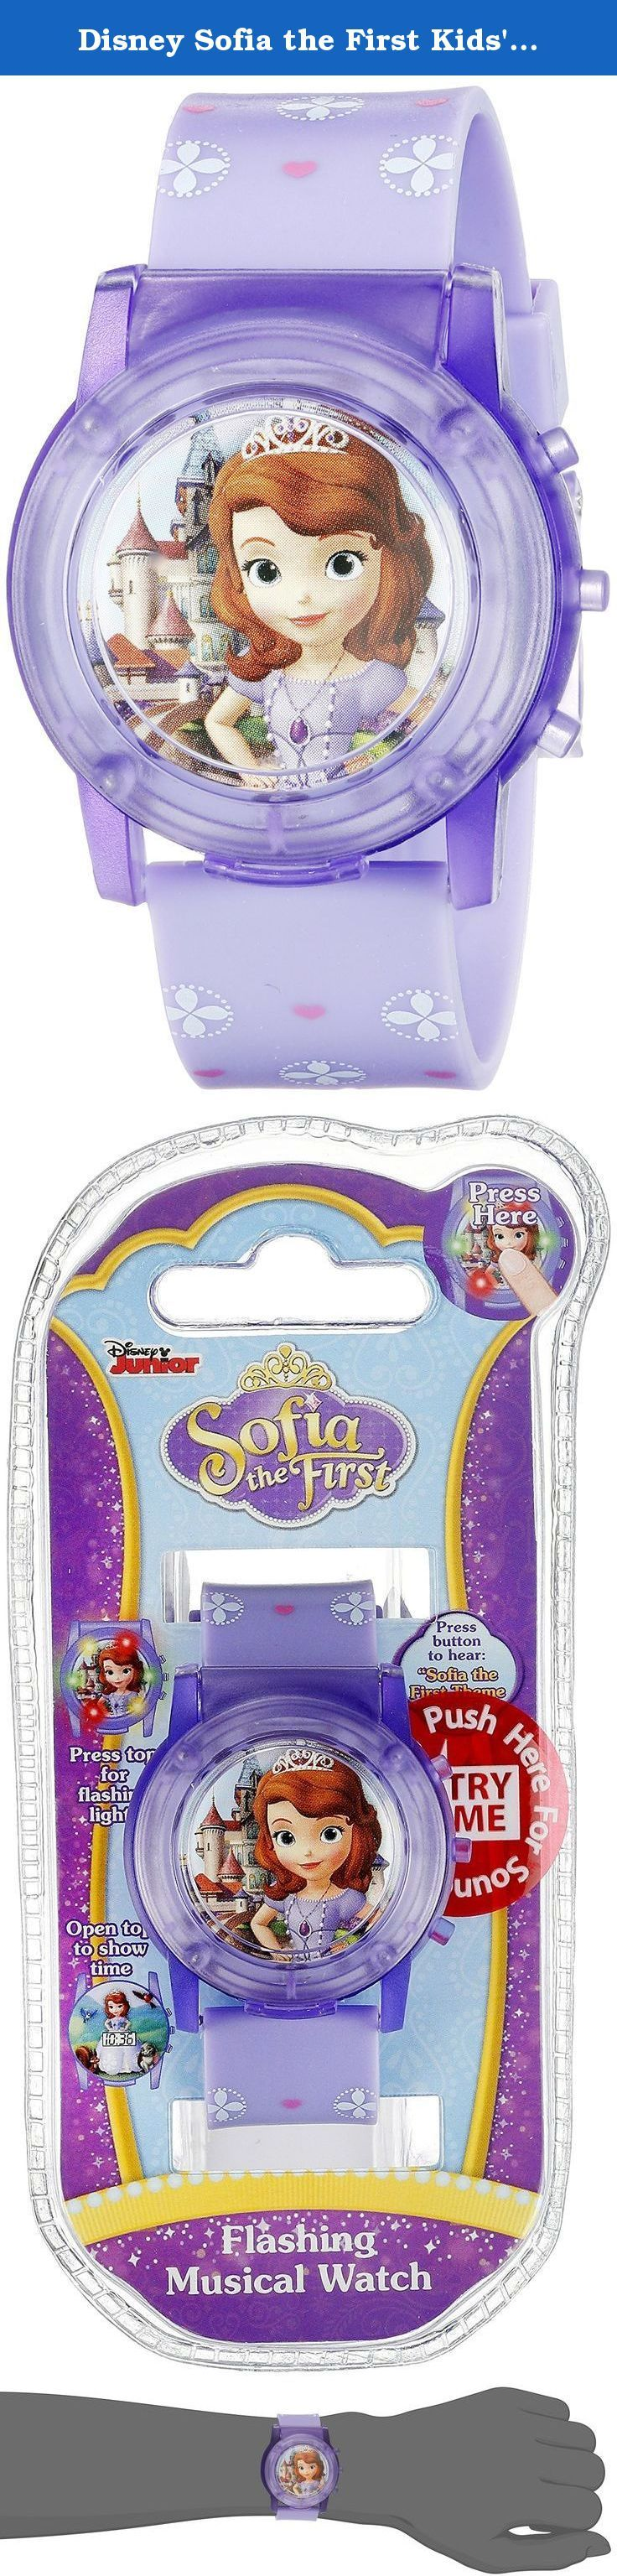 Disney Sofia the First Kids' SOF1561SR Digital Display Analog Quartz Purple Watch. Sofia the First LCD Pop Musical Watch. Push for Rotating Flashing Light. Analog-quartz Movement. Case Diameter: 25mm. Not Water Resistant.